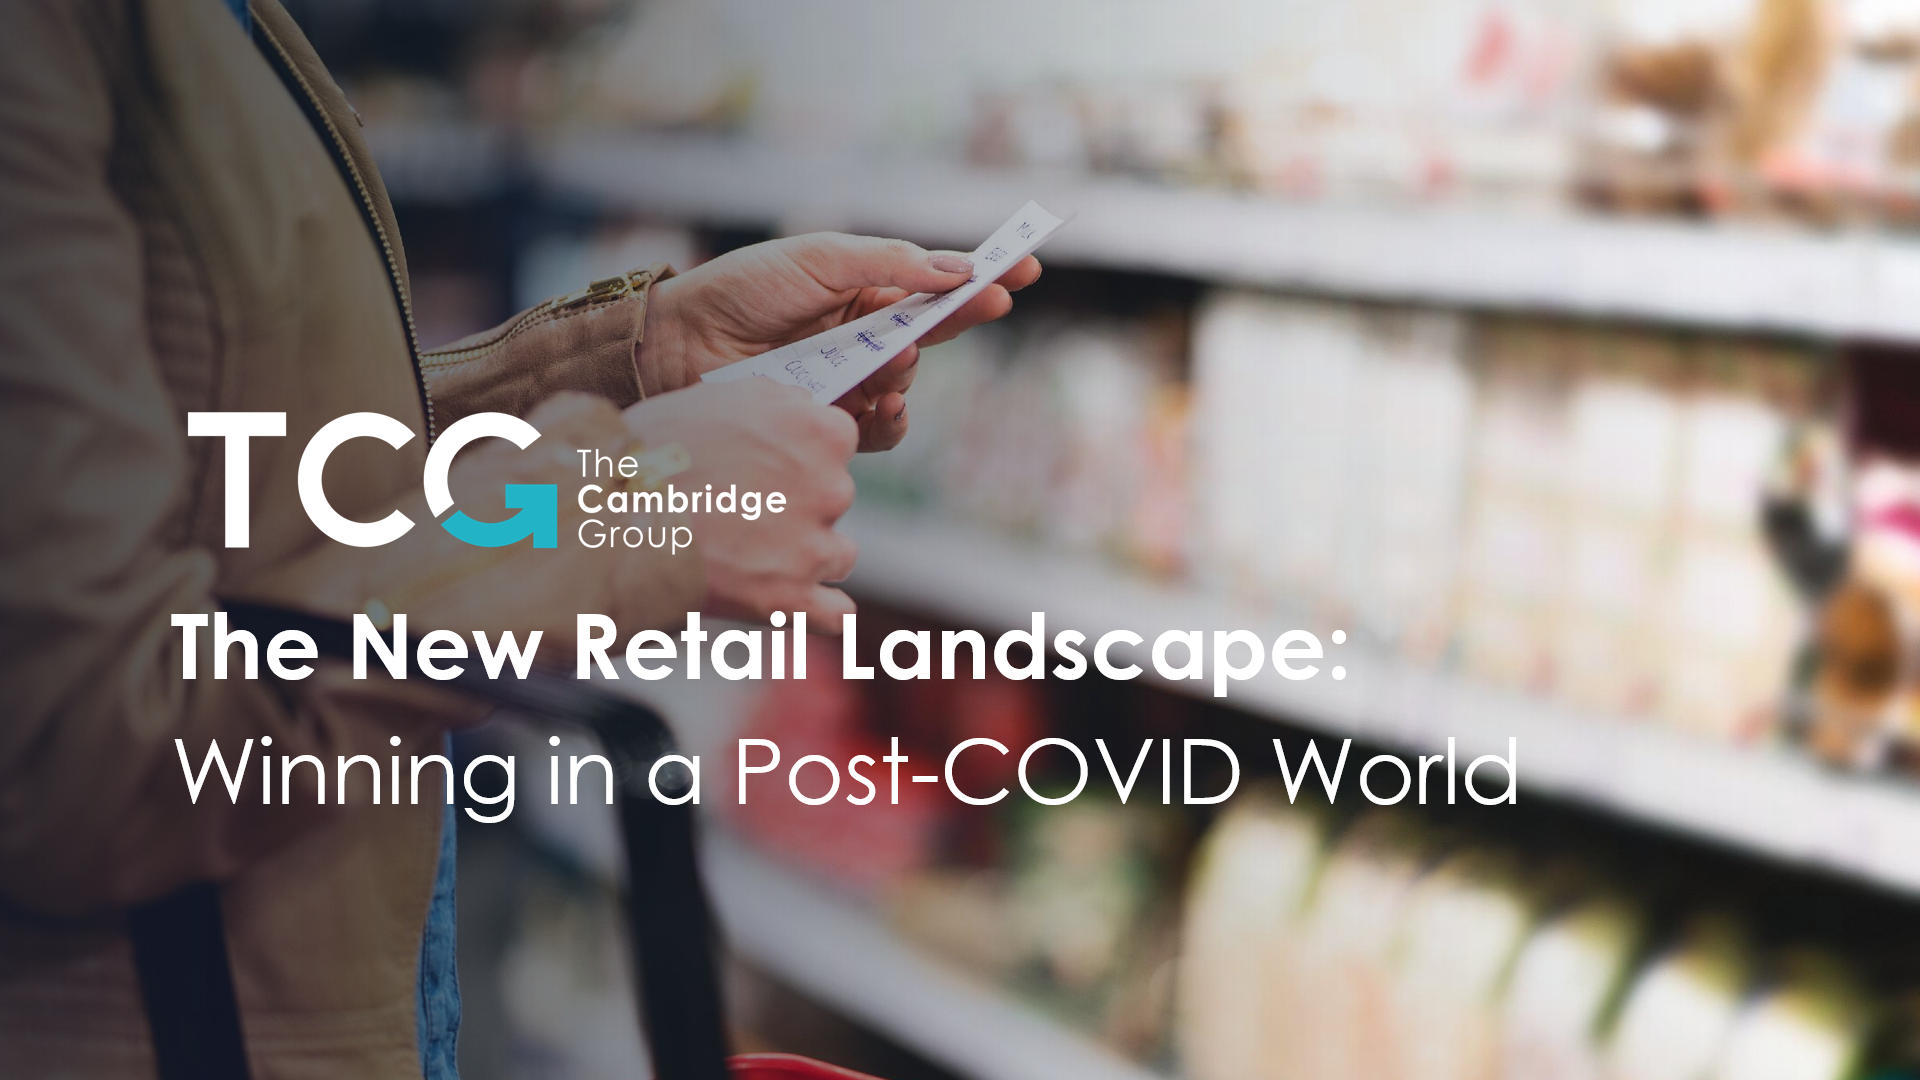 The new retail landscape: winning in a post-COVID world thumbnail